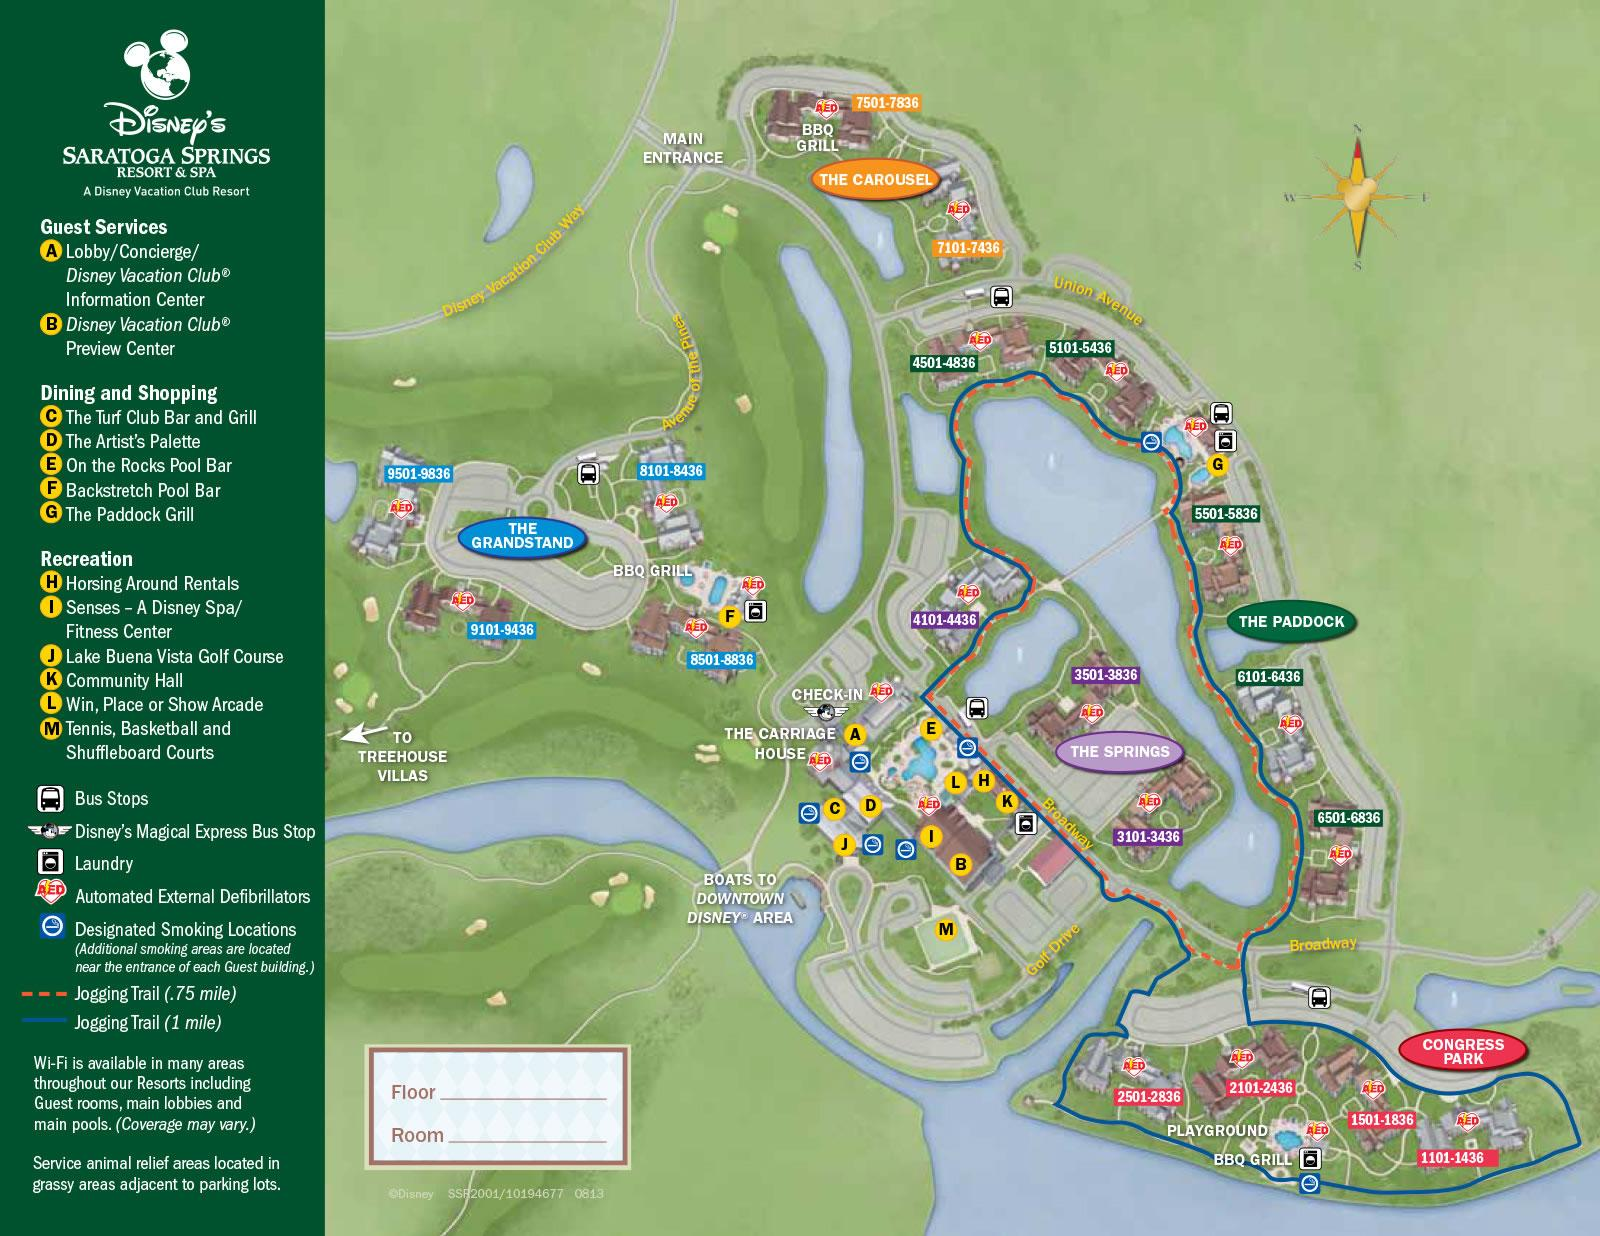 Disneys-Saratoga-Springs-Resort-map1